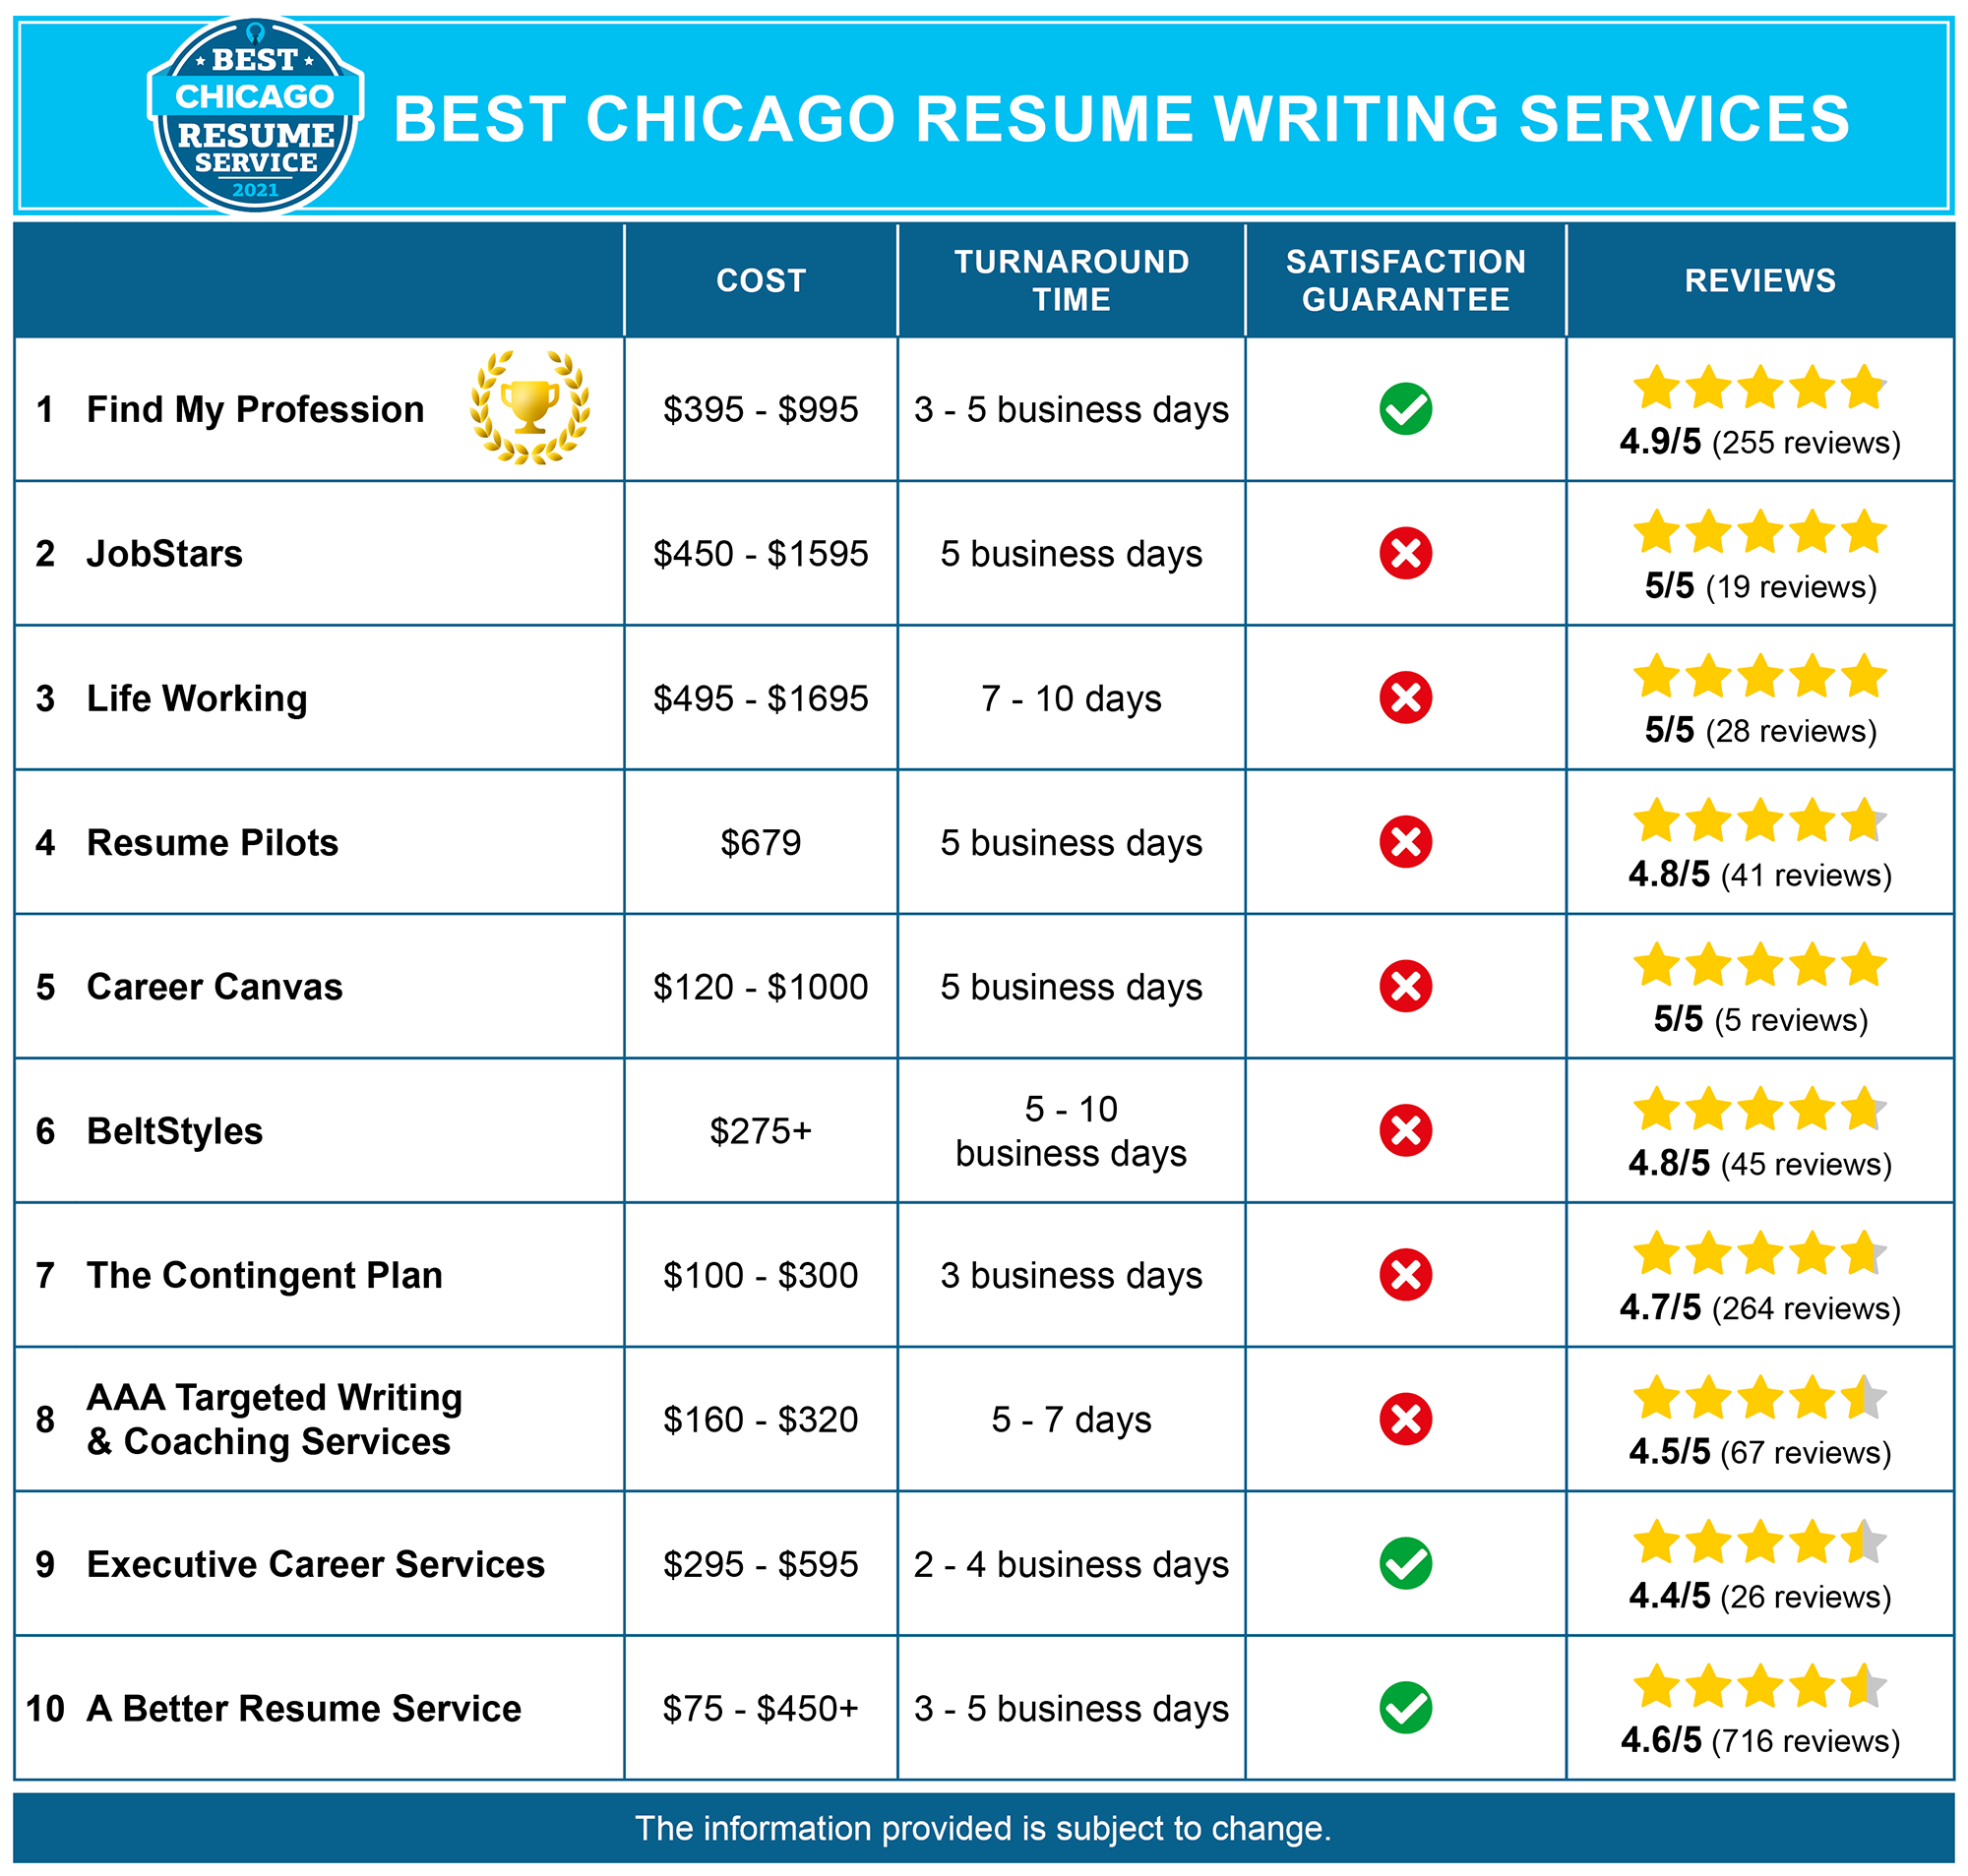 10 Best Resume Writing Services in Chicago, IL